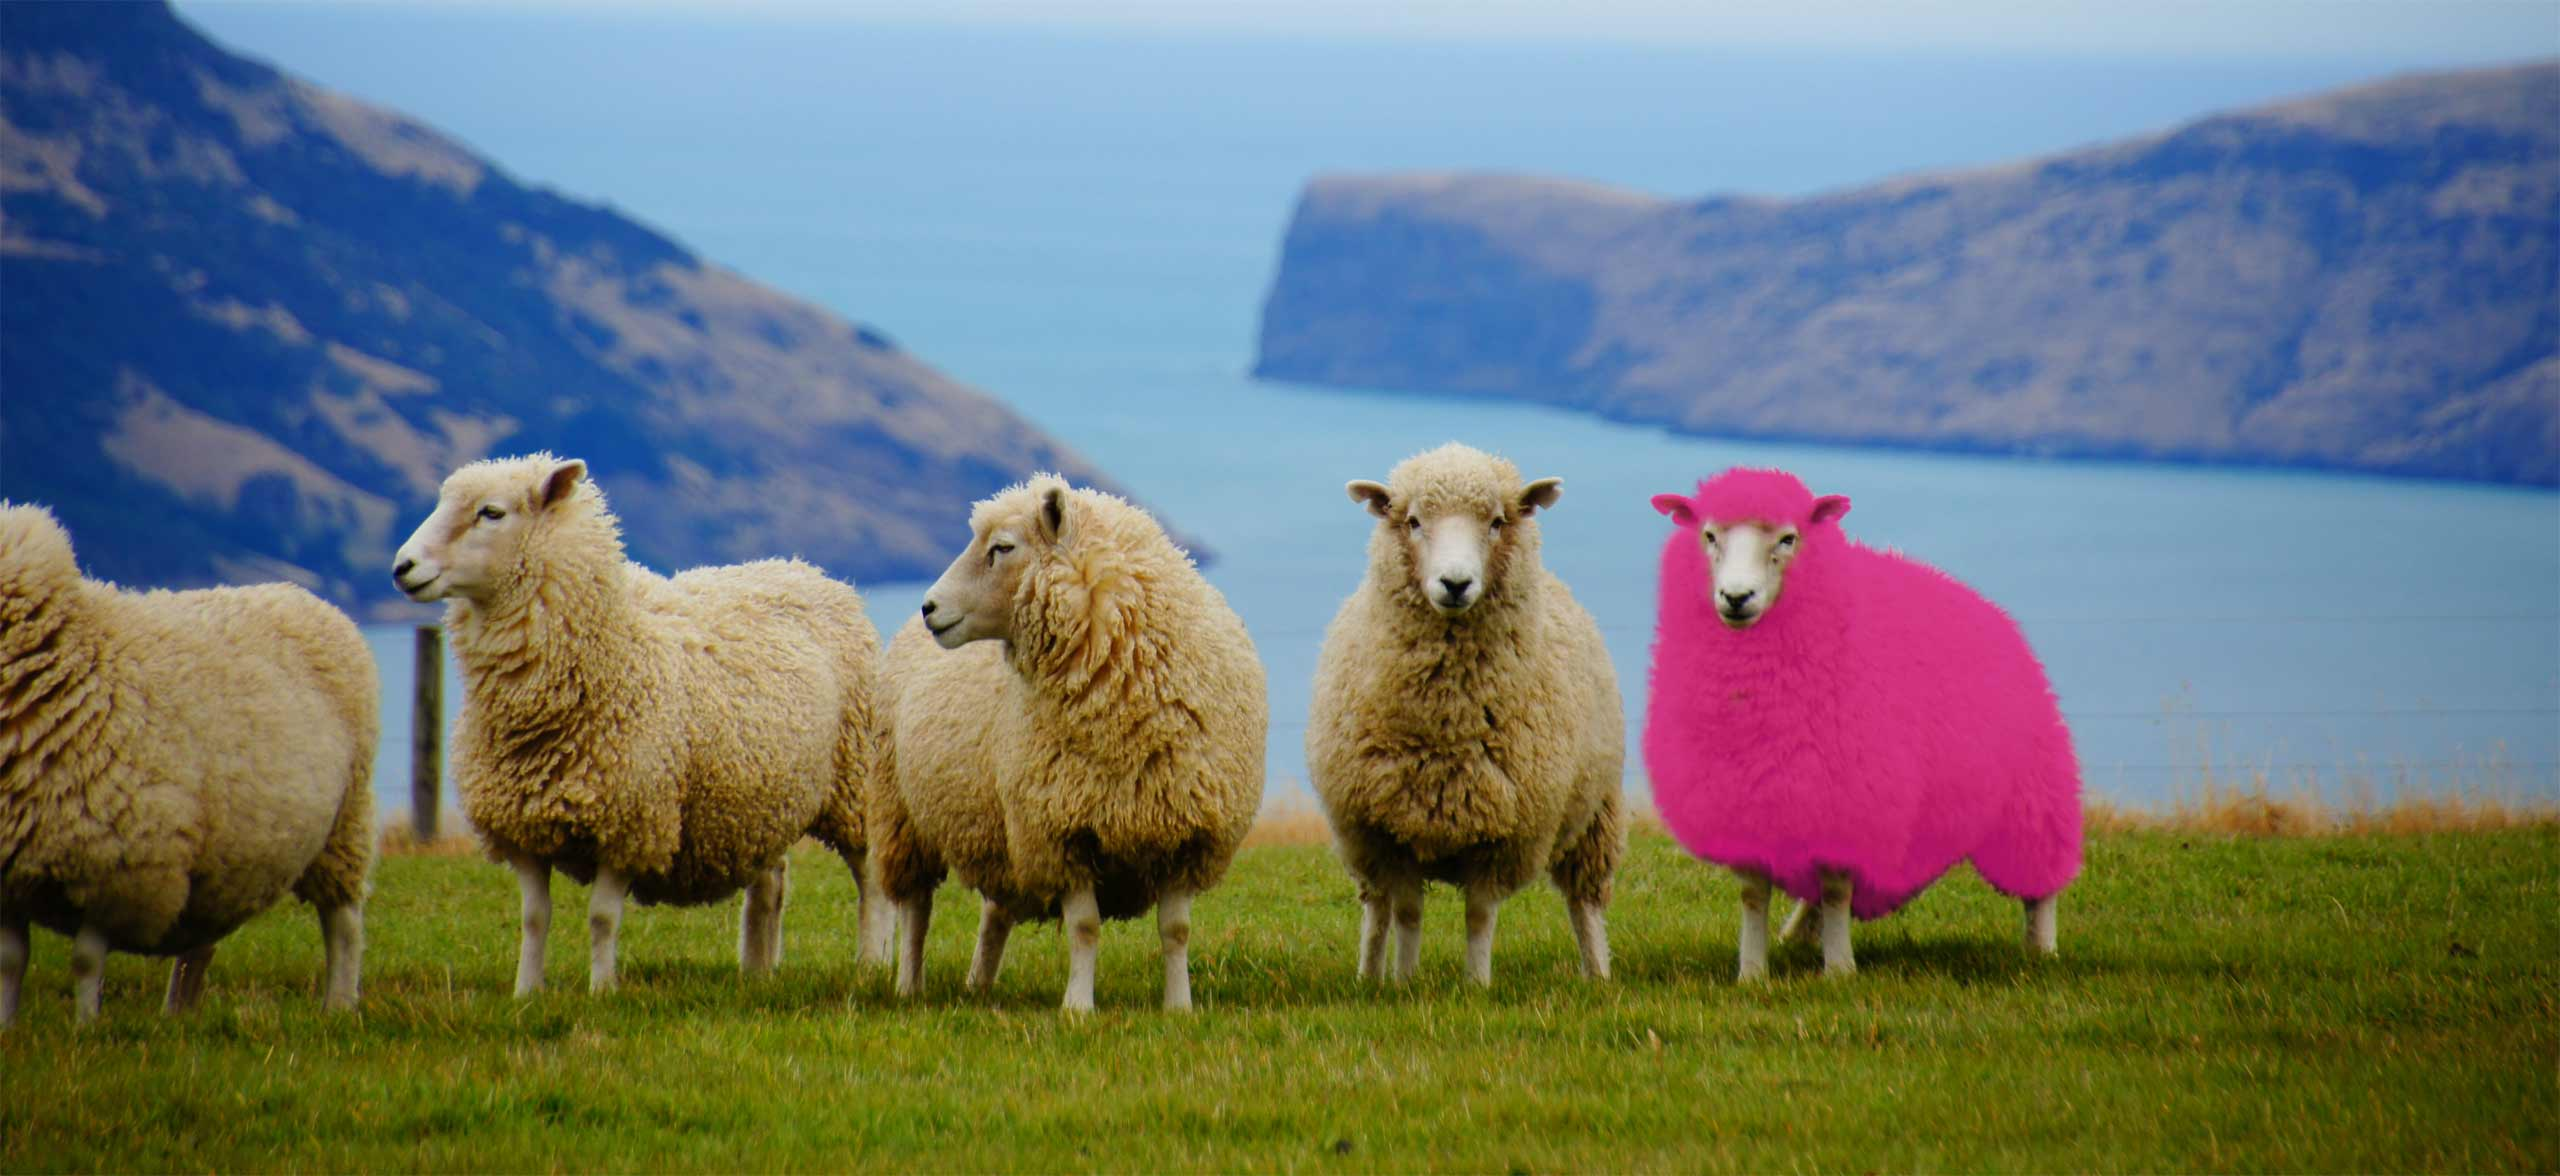 4 white sheep, with 1 pink sheep on the right. They are standing in front of the ocean on a cliff top.